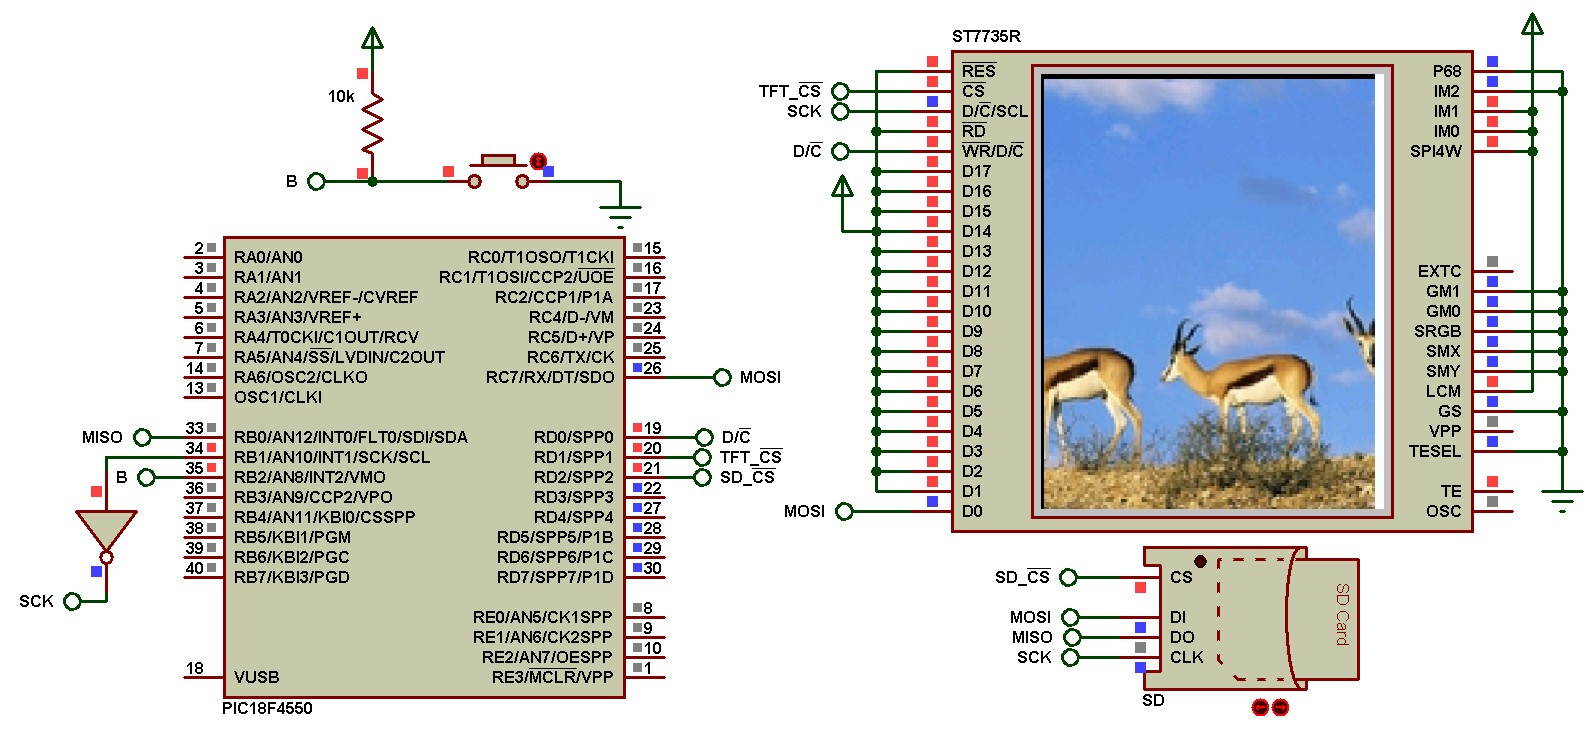 SD Card and ST7735R TFT Proteus simulation with PIC microcontroller